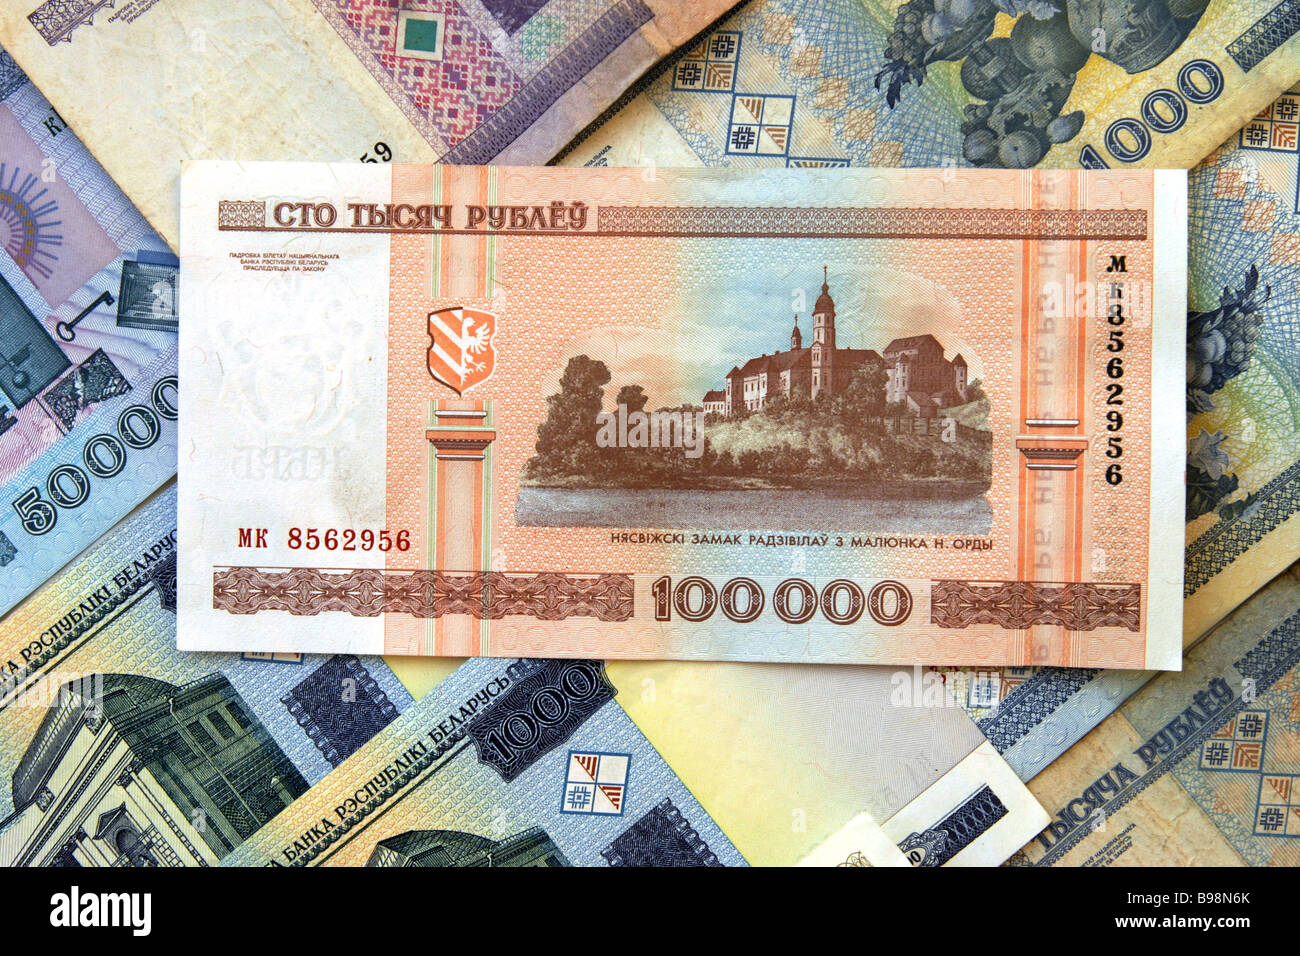 Monetary units of the Republic of Belarus One hundred thousand Belarussian rubles - Stock Image